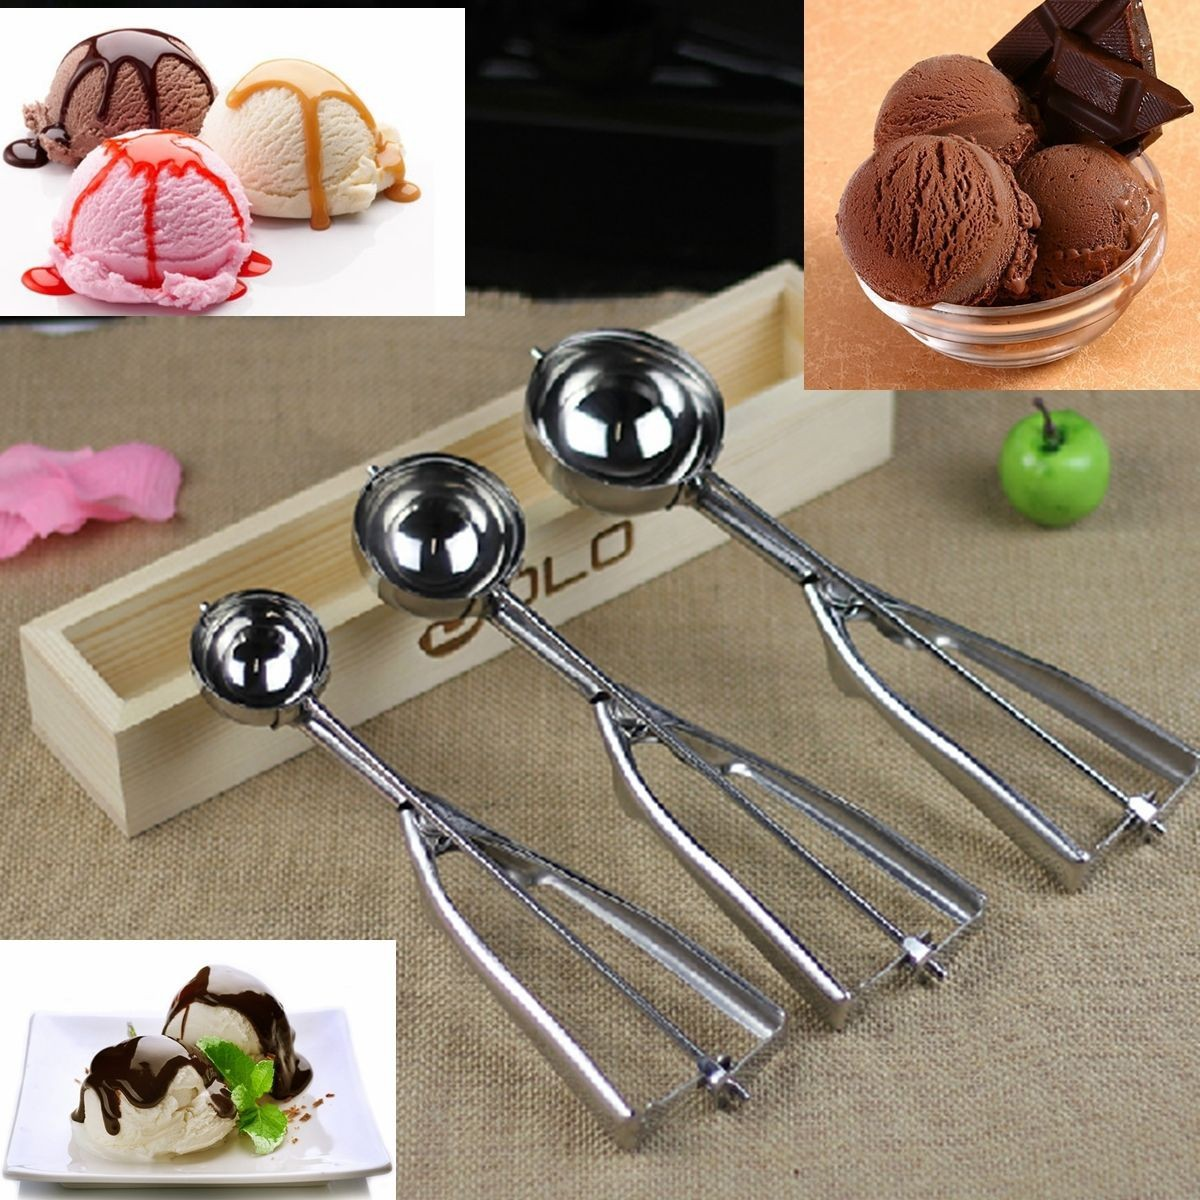 3Pcs Stainless Steel Spring Handle Ice Cream Scoop Spoon Mashed Potato Cookie Spoons Set